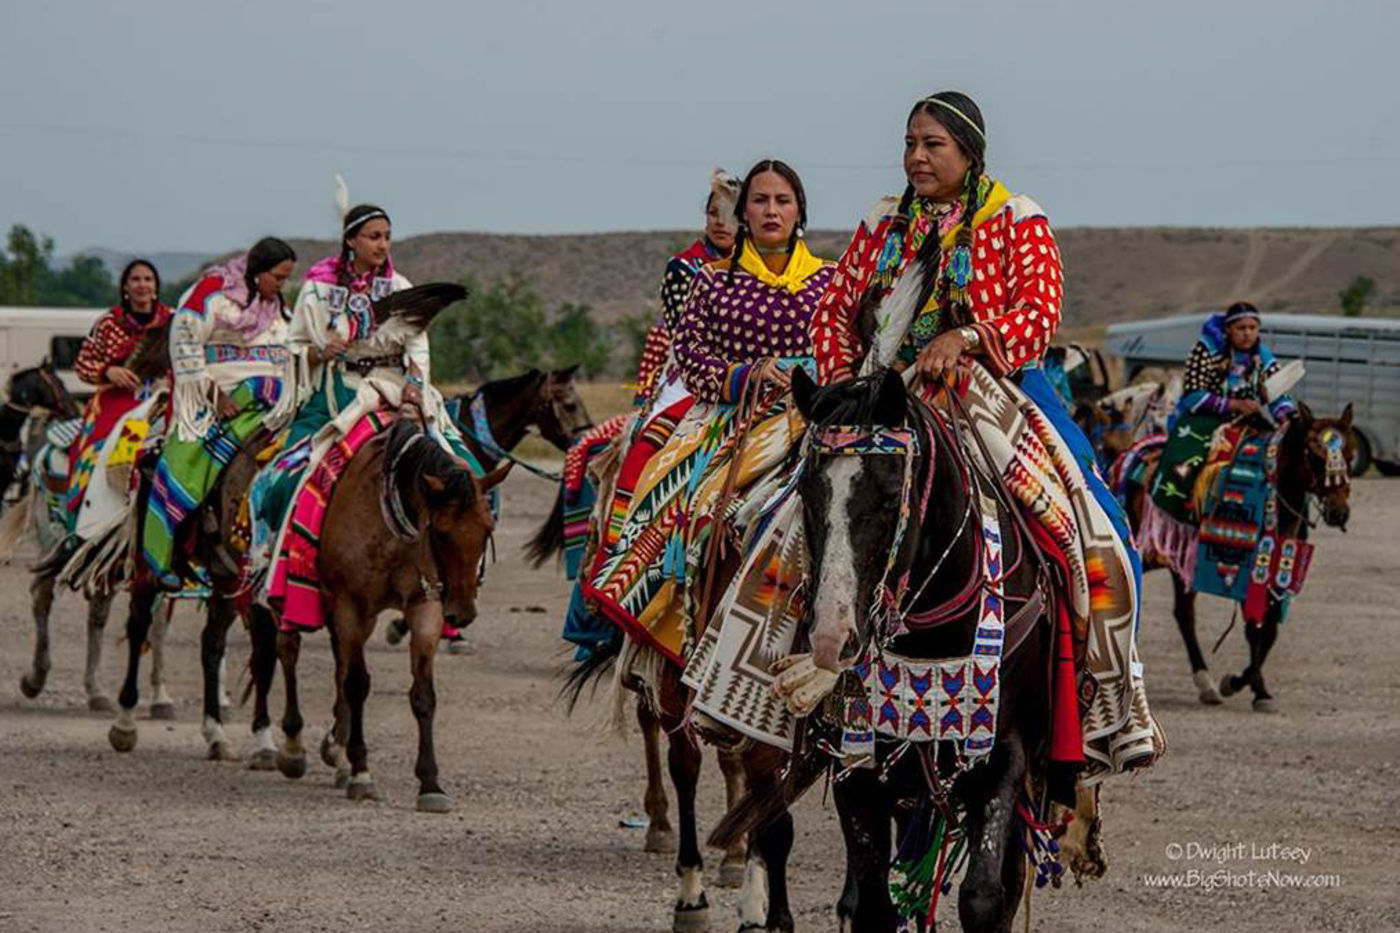 A group of Apsáalooke women on horseback, wearing traditional clothing and accessories.